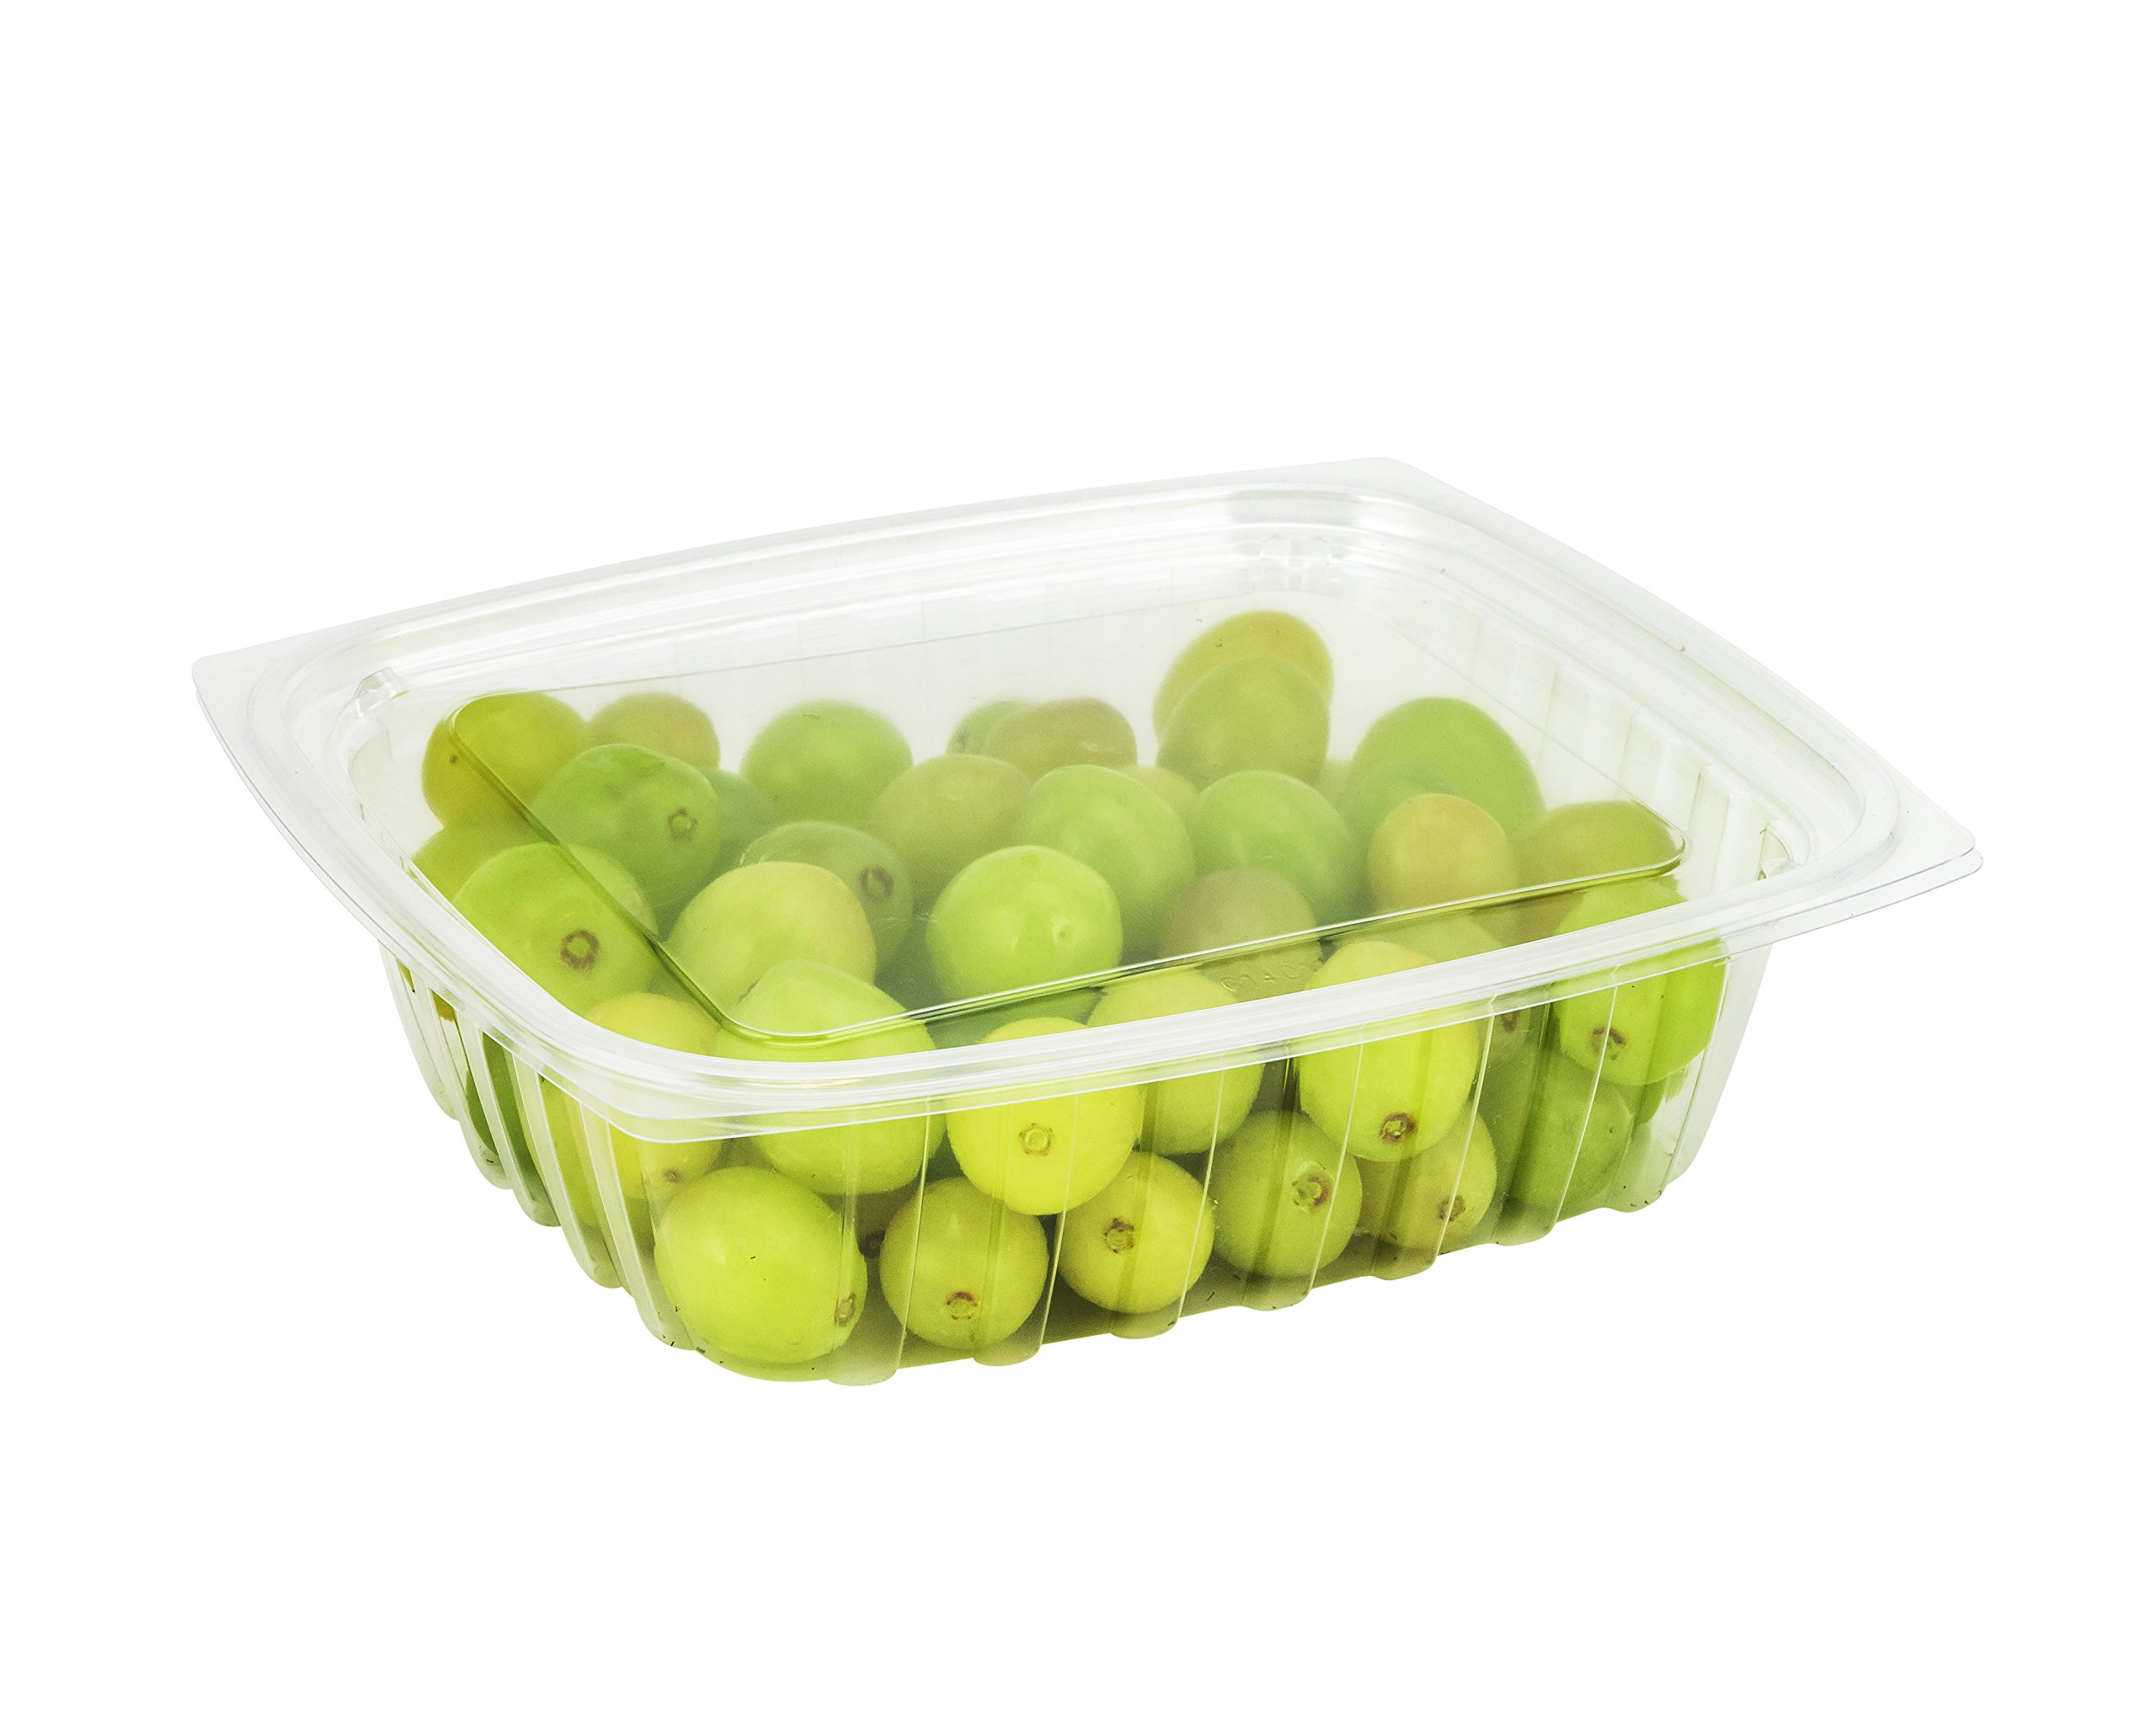 Dart C24DCPR, 24-Ounce ClearPac Clear Rectangular Plastic Container With A Flat Lid, Take Out Deli Fruit Food Disposable Containers (100)